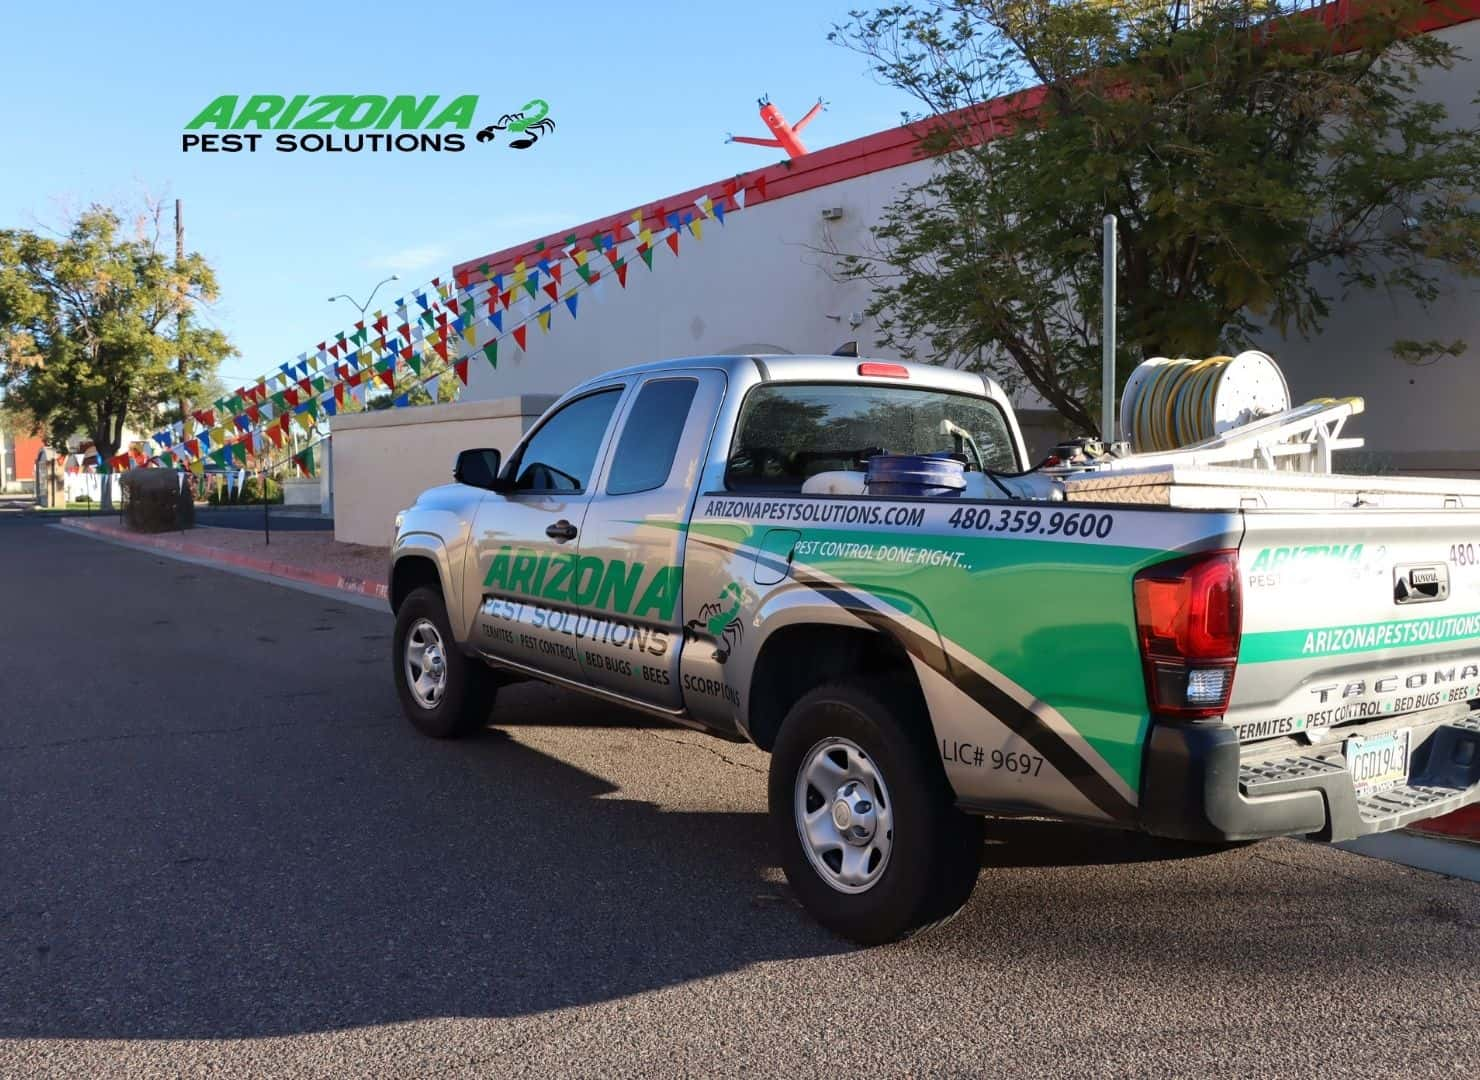 commercial pest control services - arizona pest solutions gilbert az